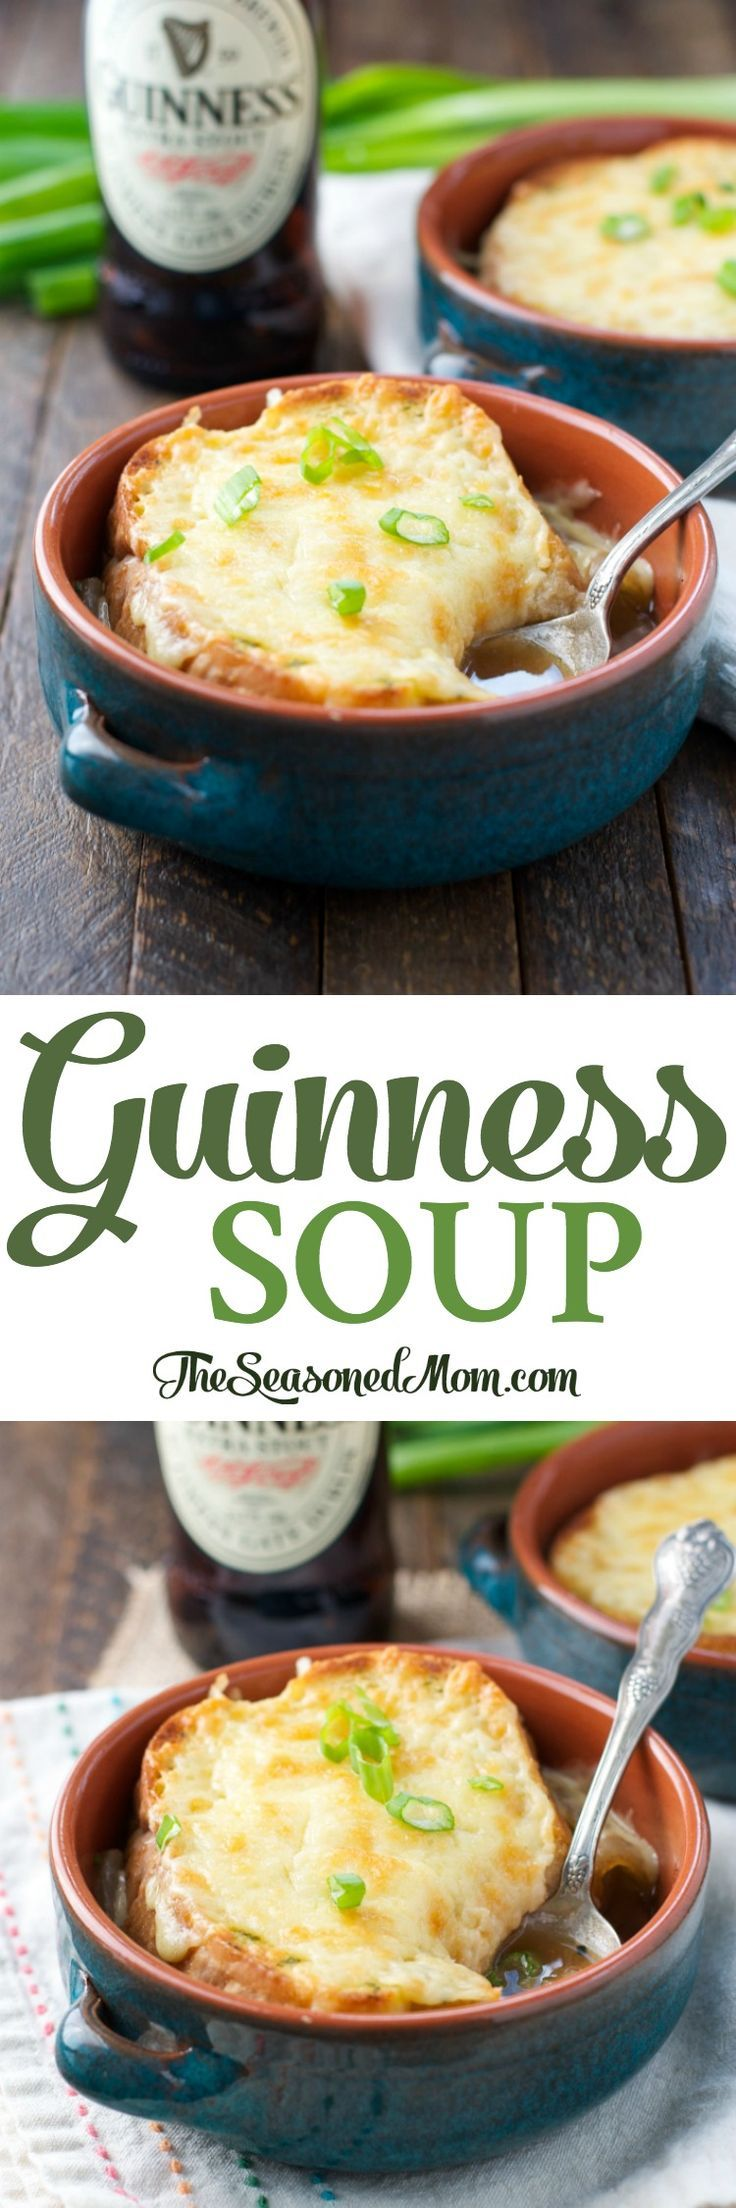 This quick and easy Guinness Soup is perfect for St. Patrick's Day! Full of all the traditional flavors your love! This is the perfect meal to make for your family to celebrate St. Patrick's Day!